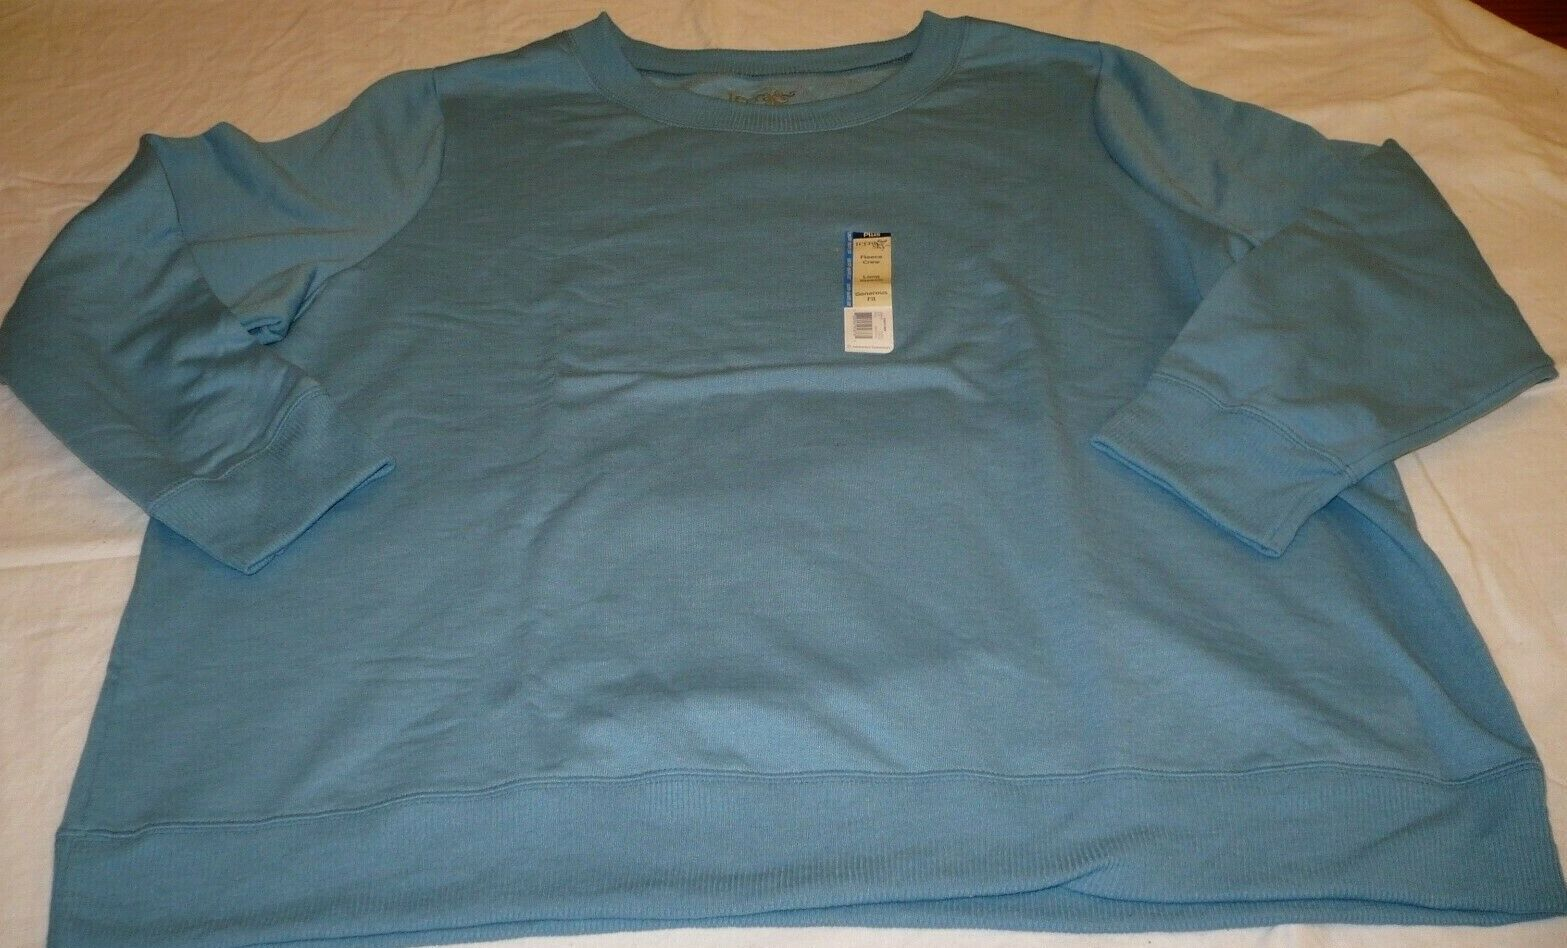 Primary image for Terra & Sky Fleece Crew Long Sleeve Shirt Light Blue 4X 28-30W Generous Fit